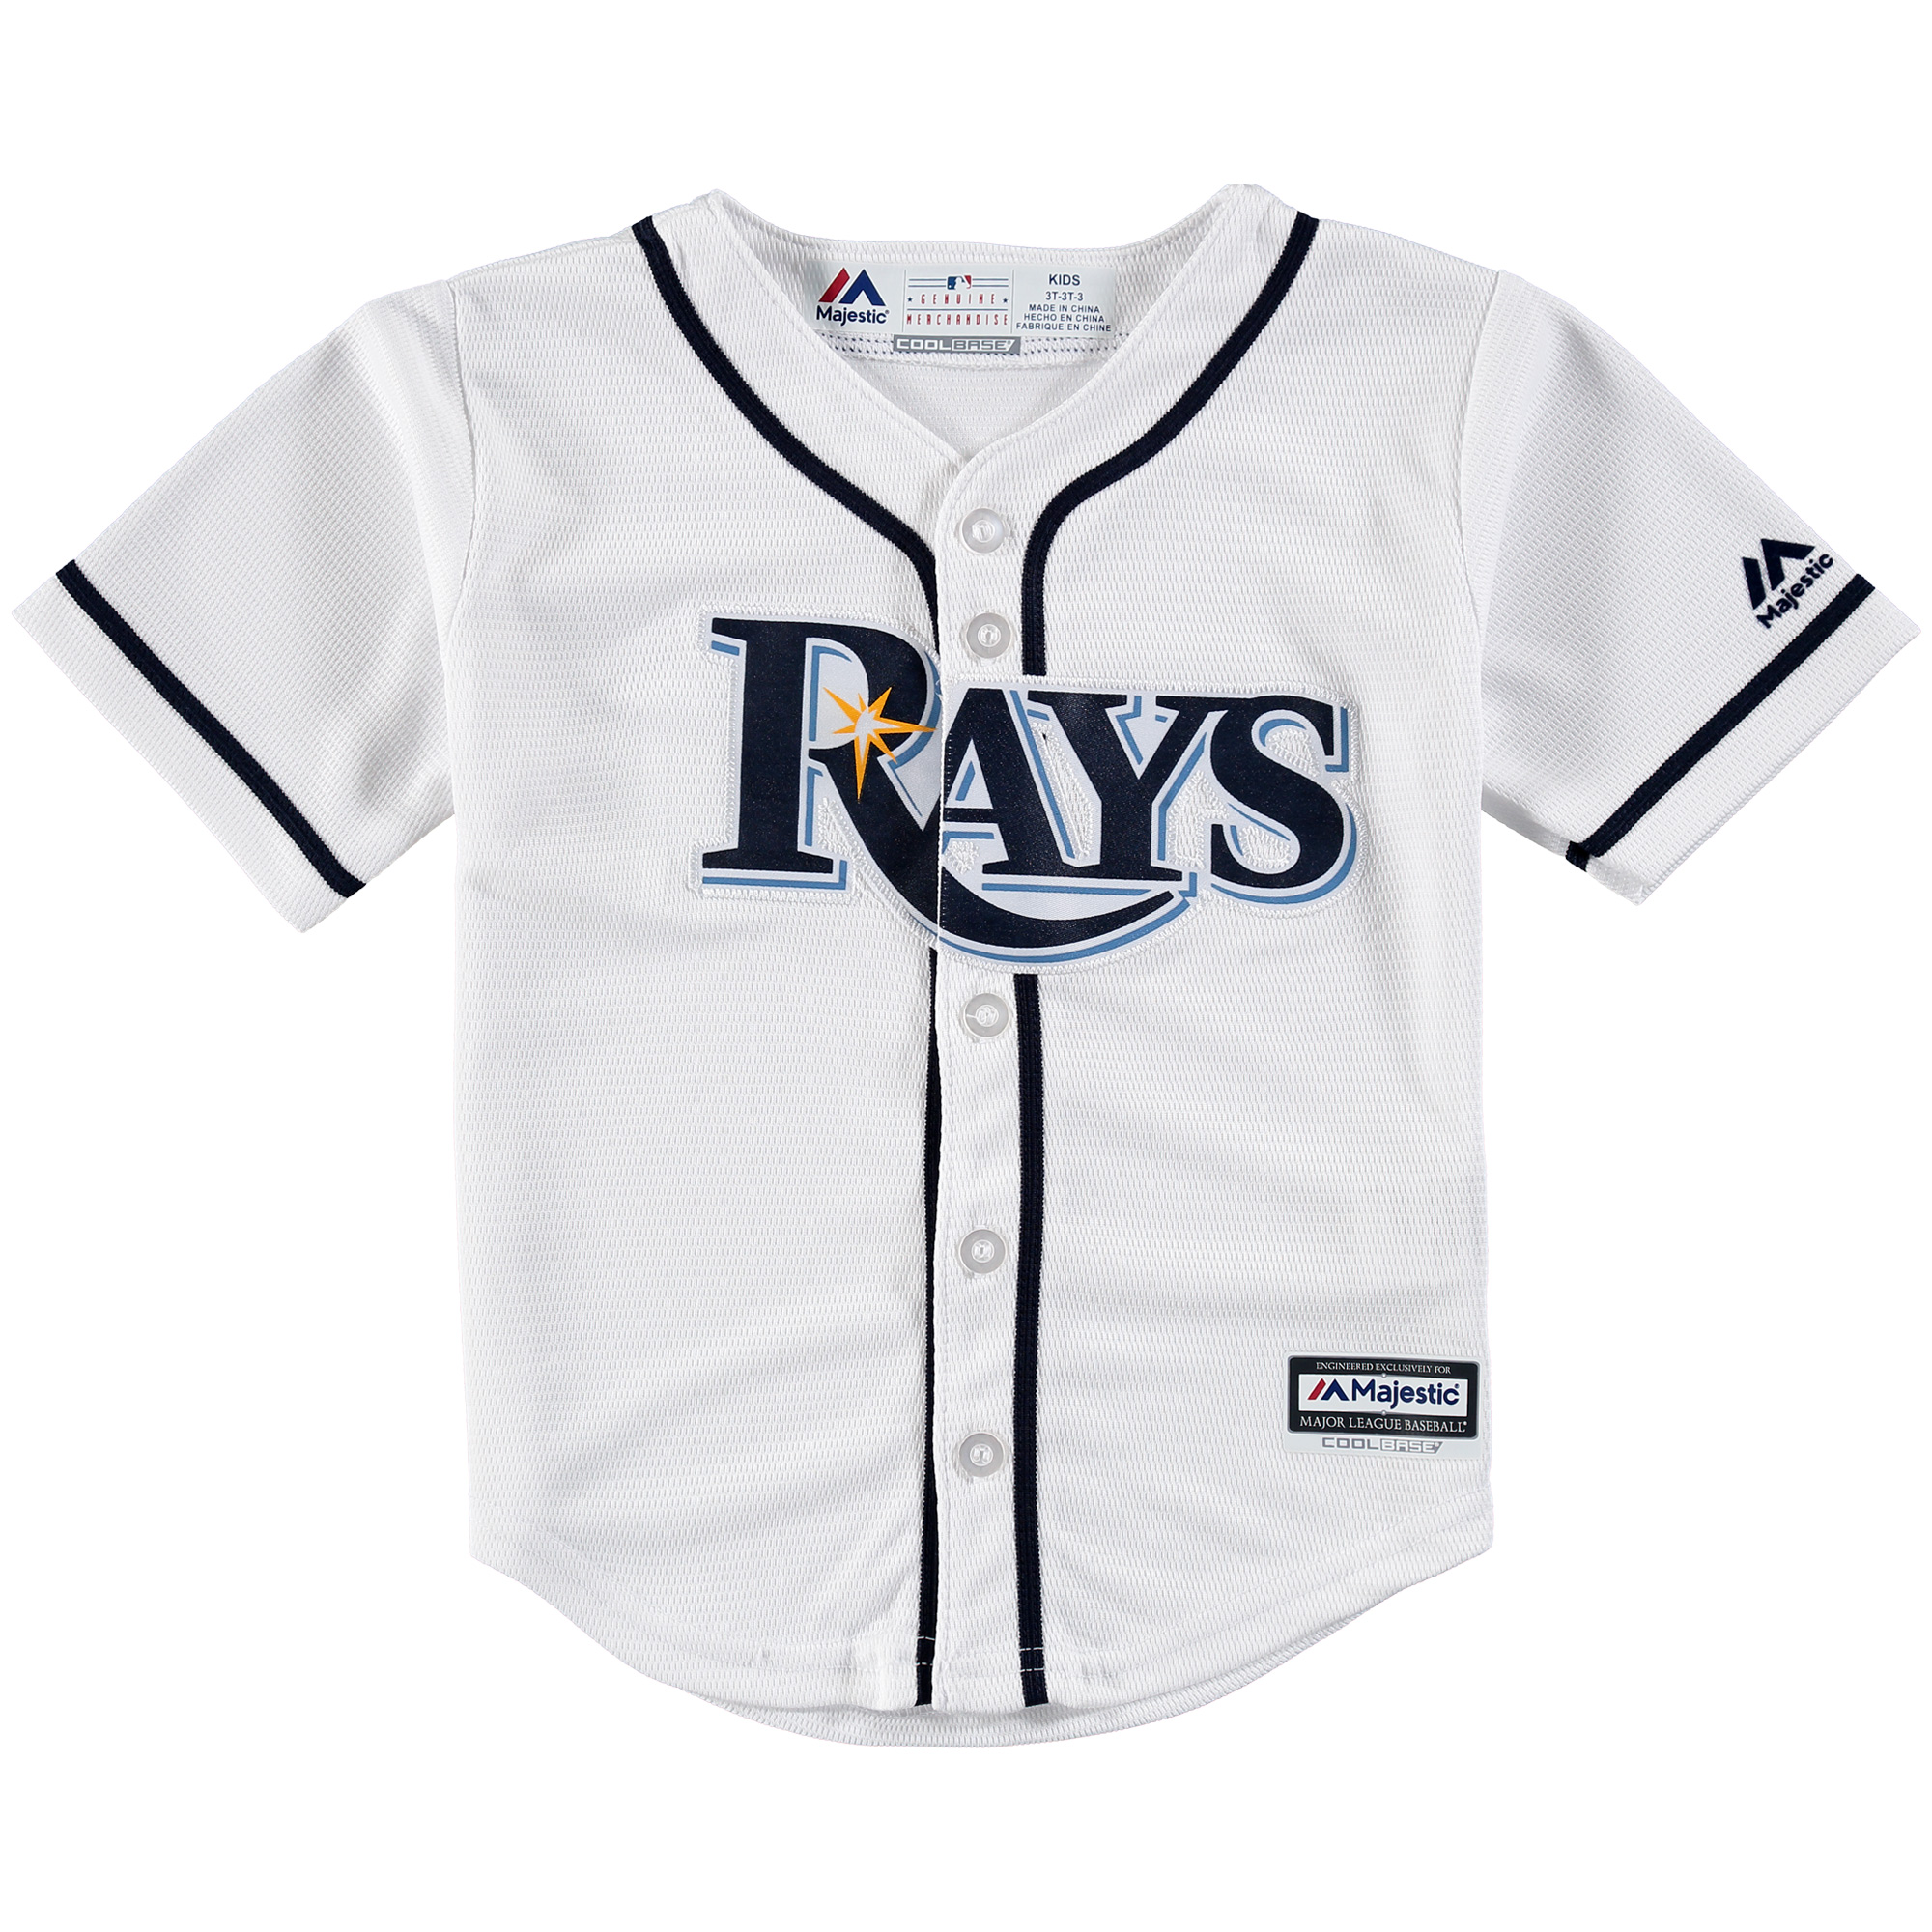 Tampa Bay Rays Majestic Toddler Official Cool Base Jersey - White